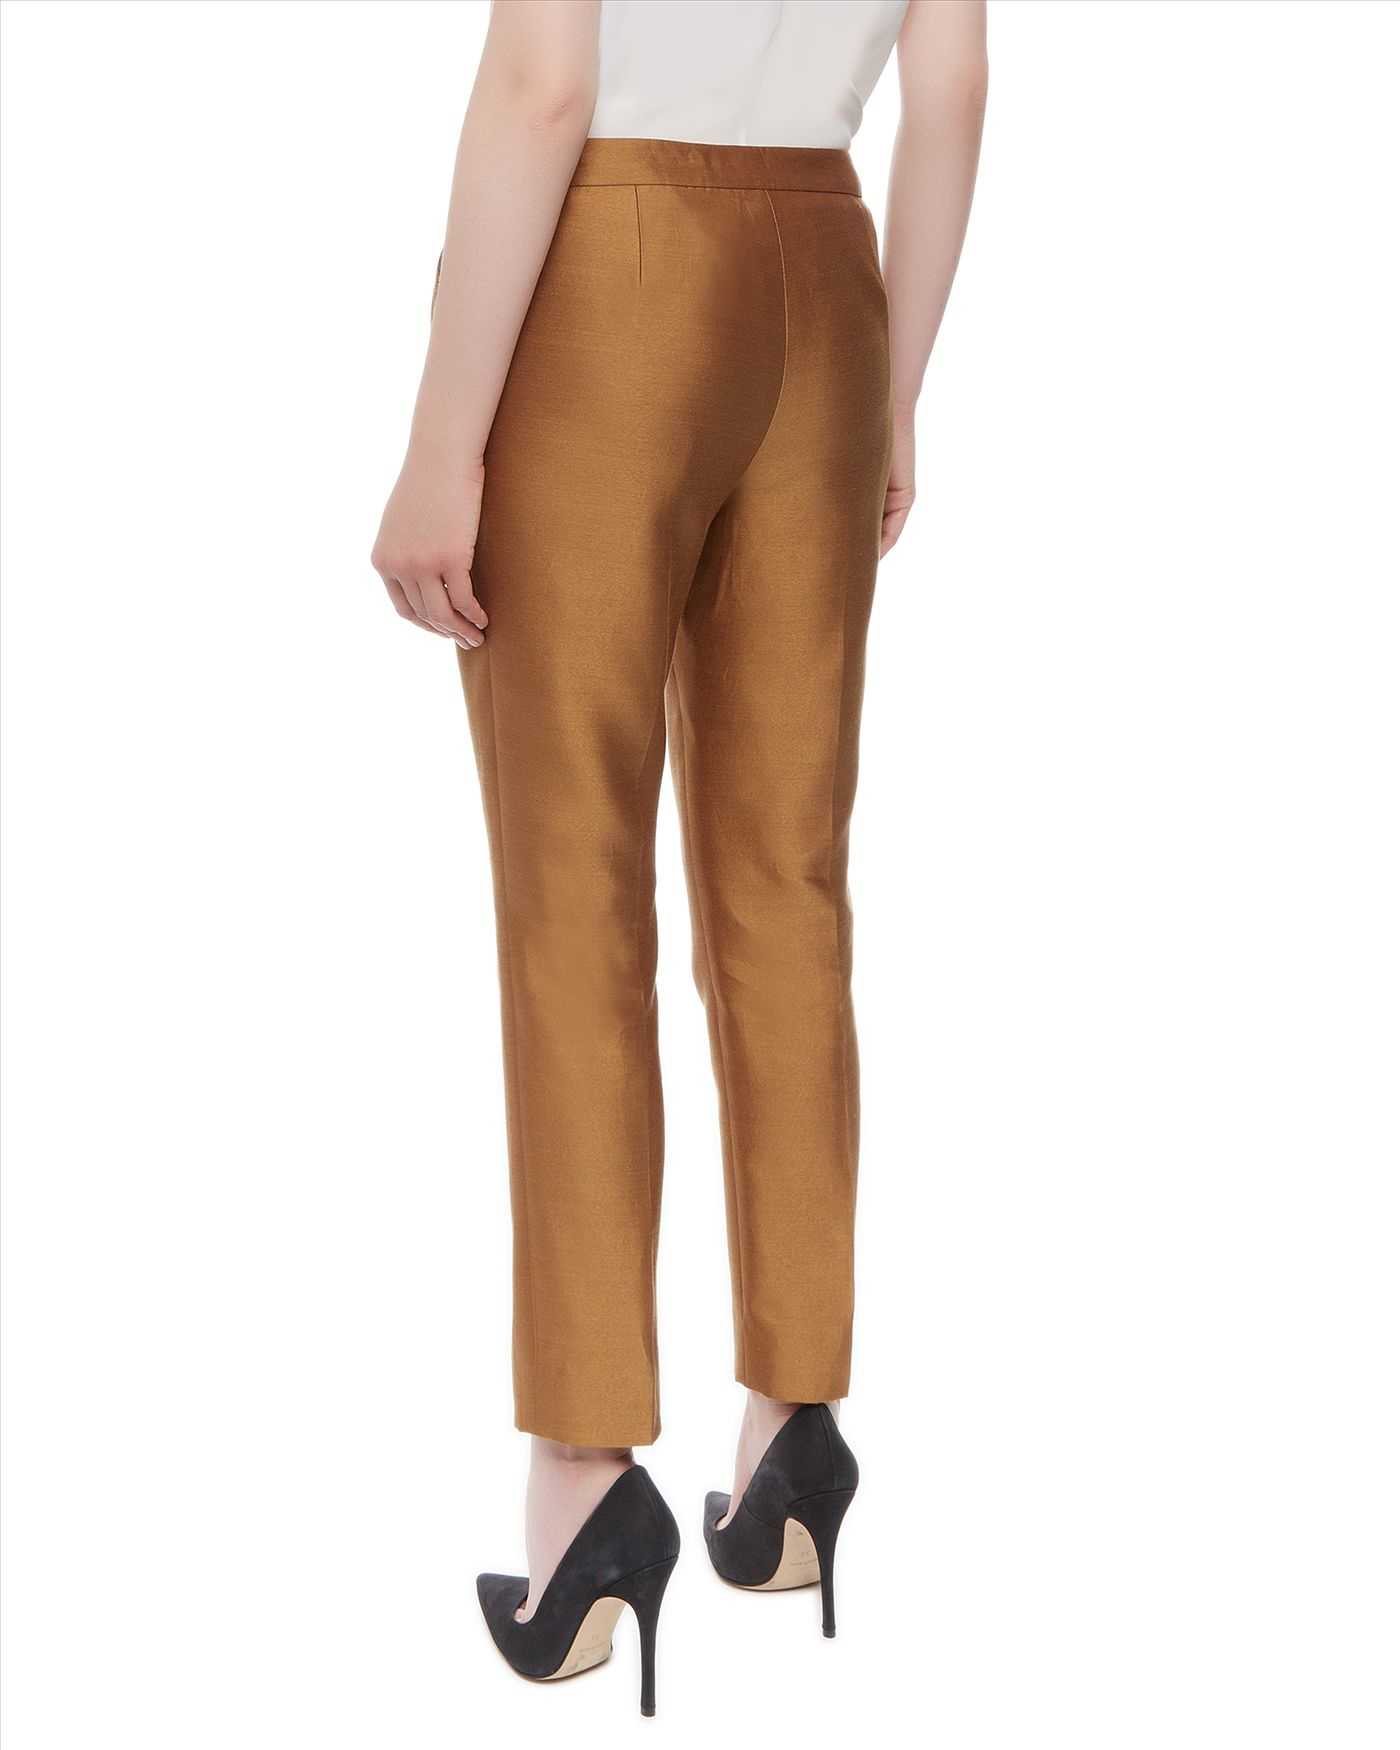 Jaeger Silk Cotton Capri Trousers in Metallic | Lyst